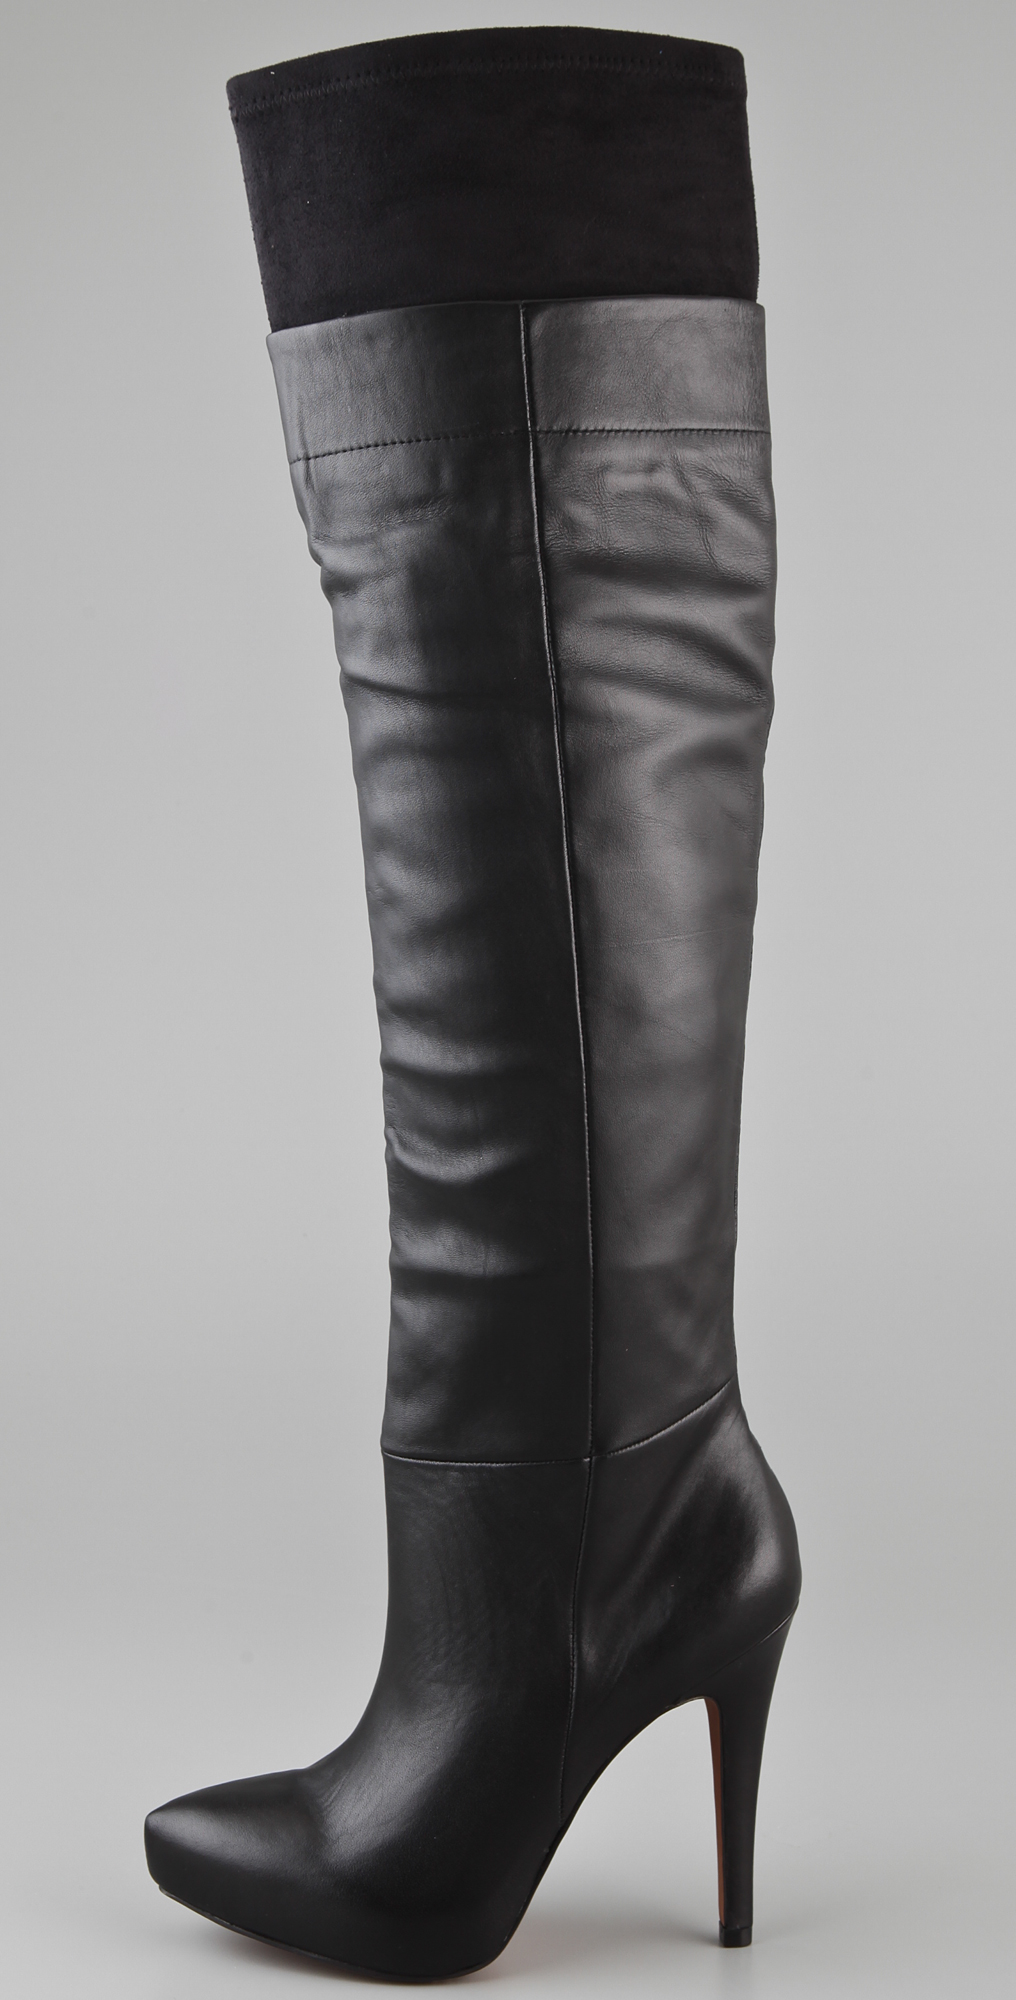 5a7127321d6b9 Sam Edelman Remy Over the Knee Top Line Boots